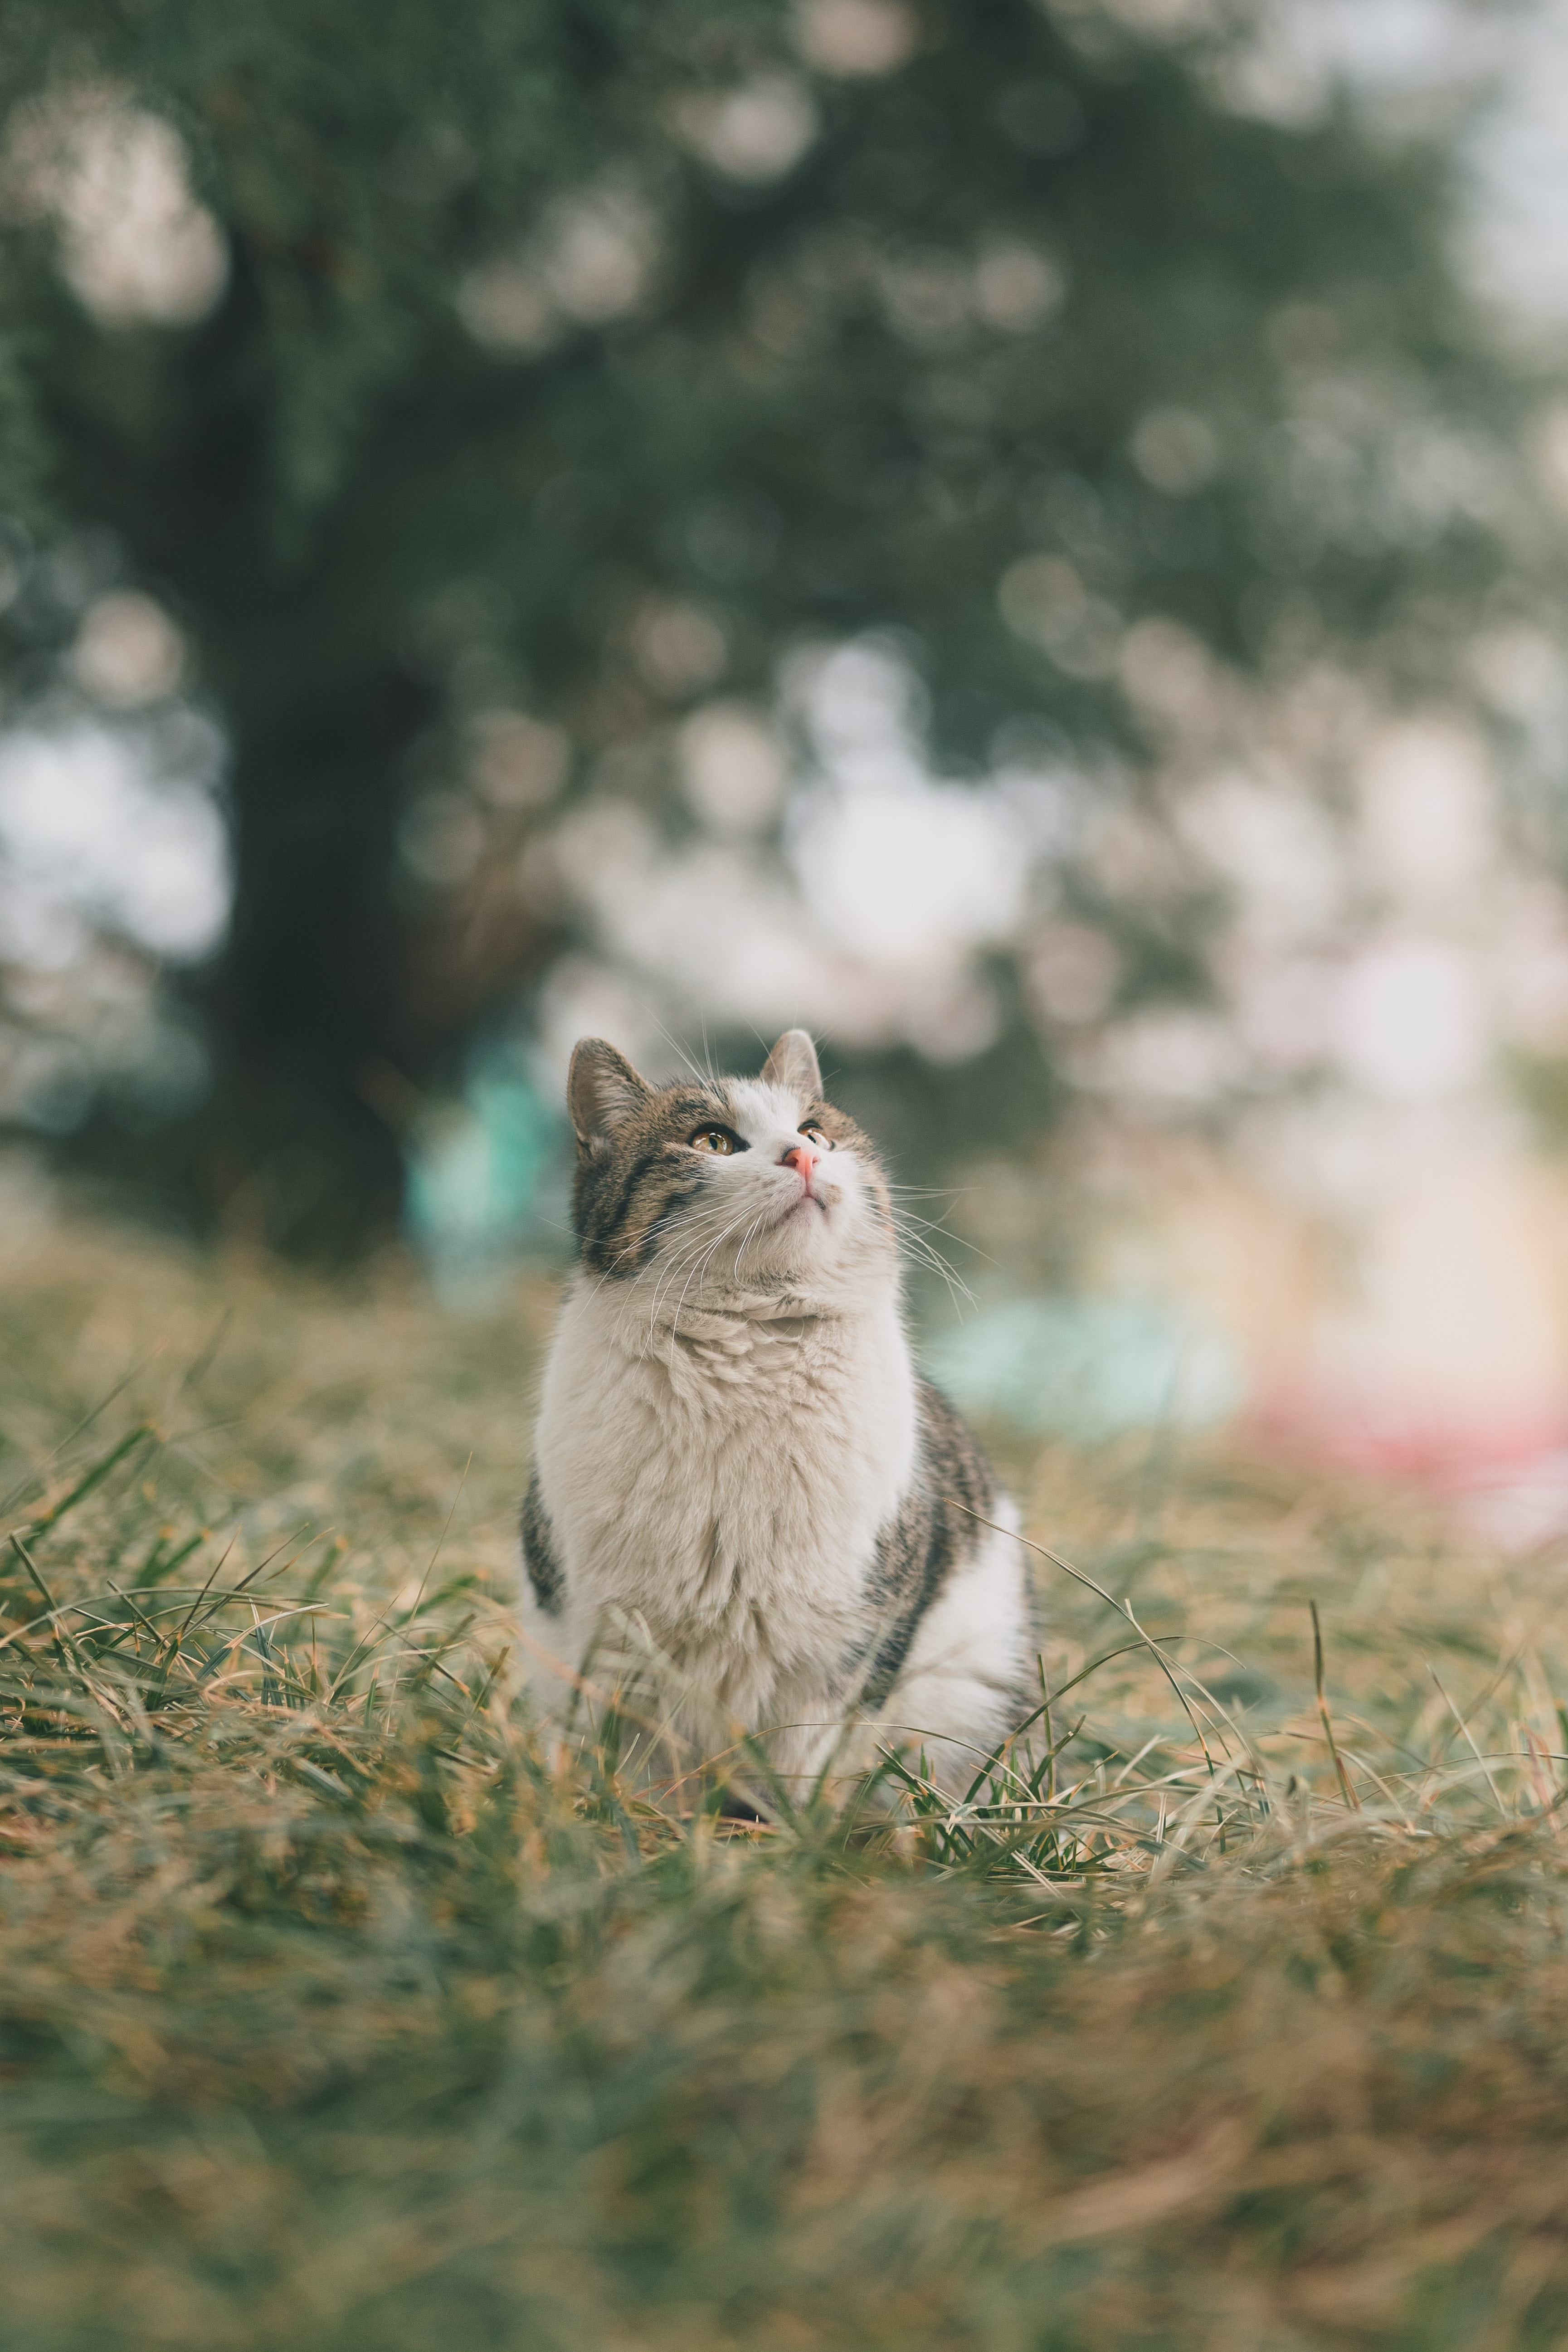 151909 download wallpaper Animals, Cat, Pet, Sight, Opinion, Fluffy, Grass screensavers and pictures for free